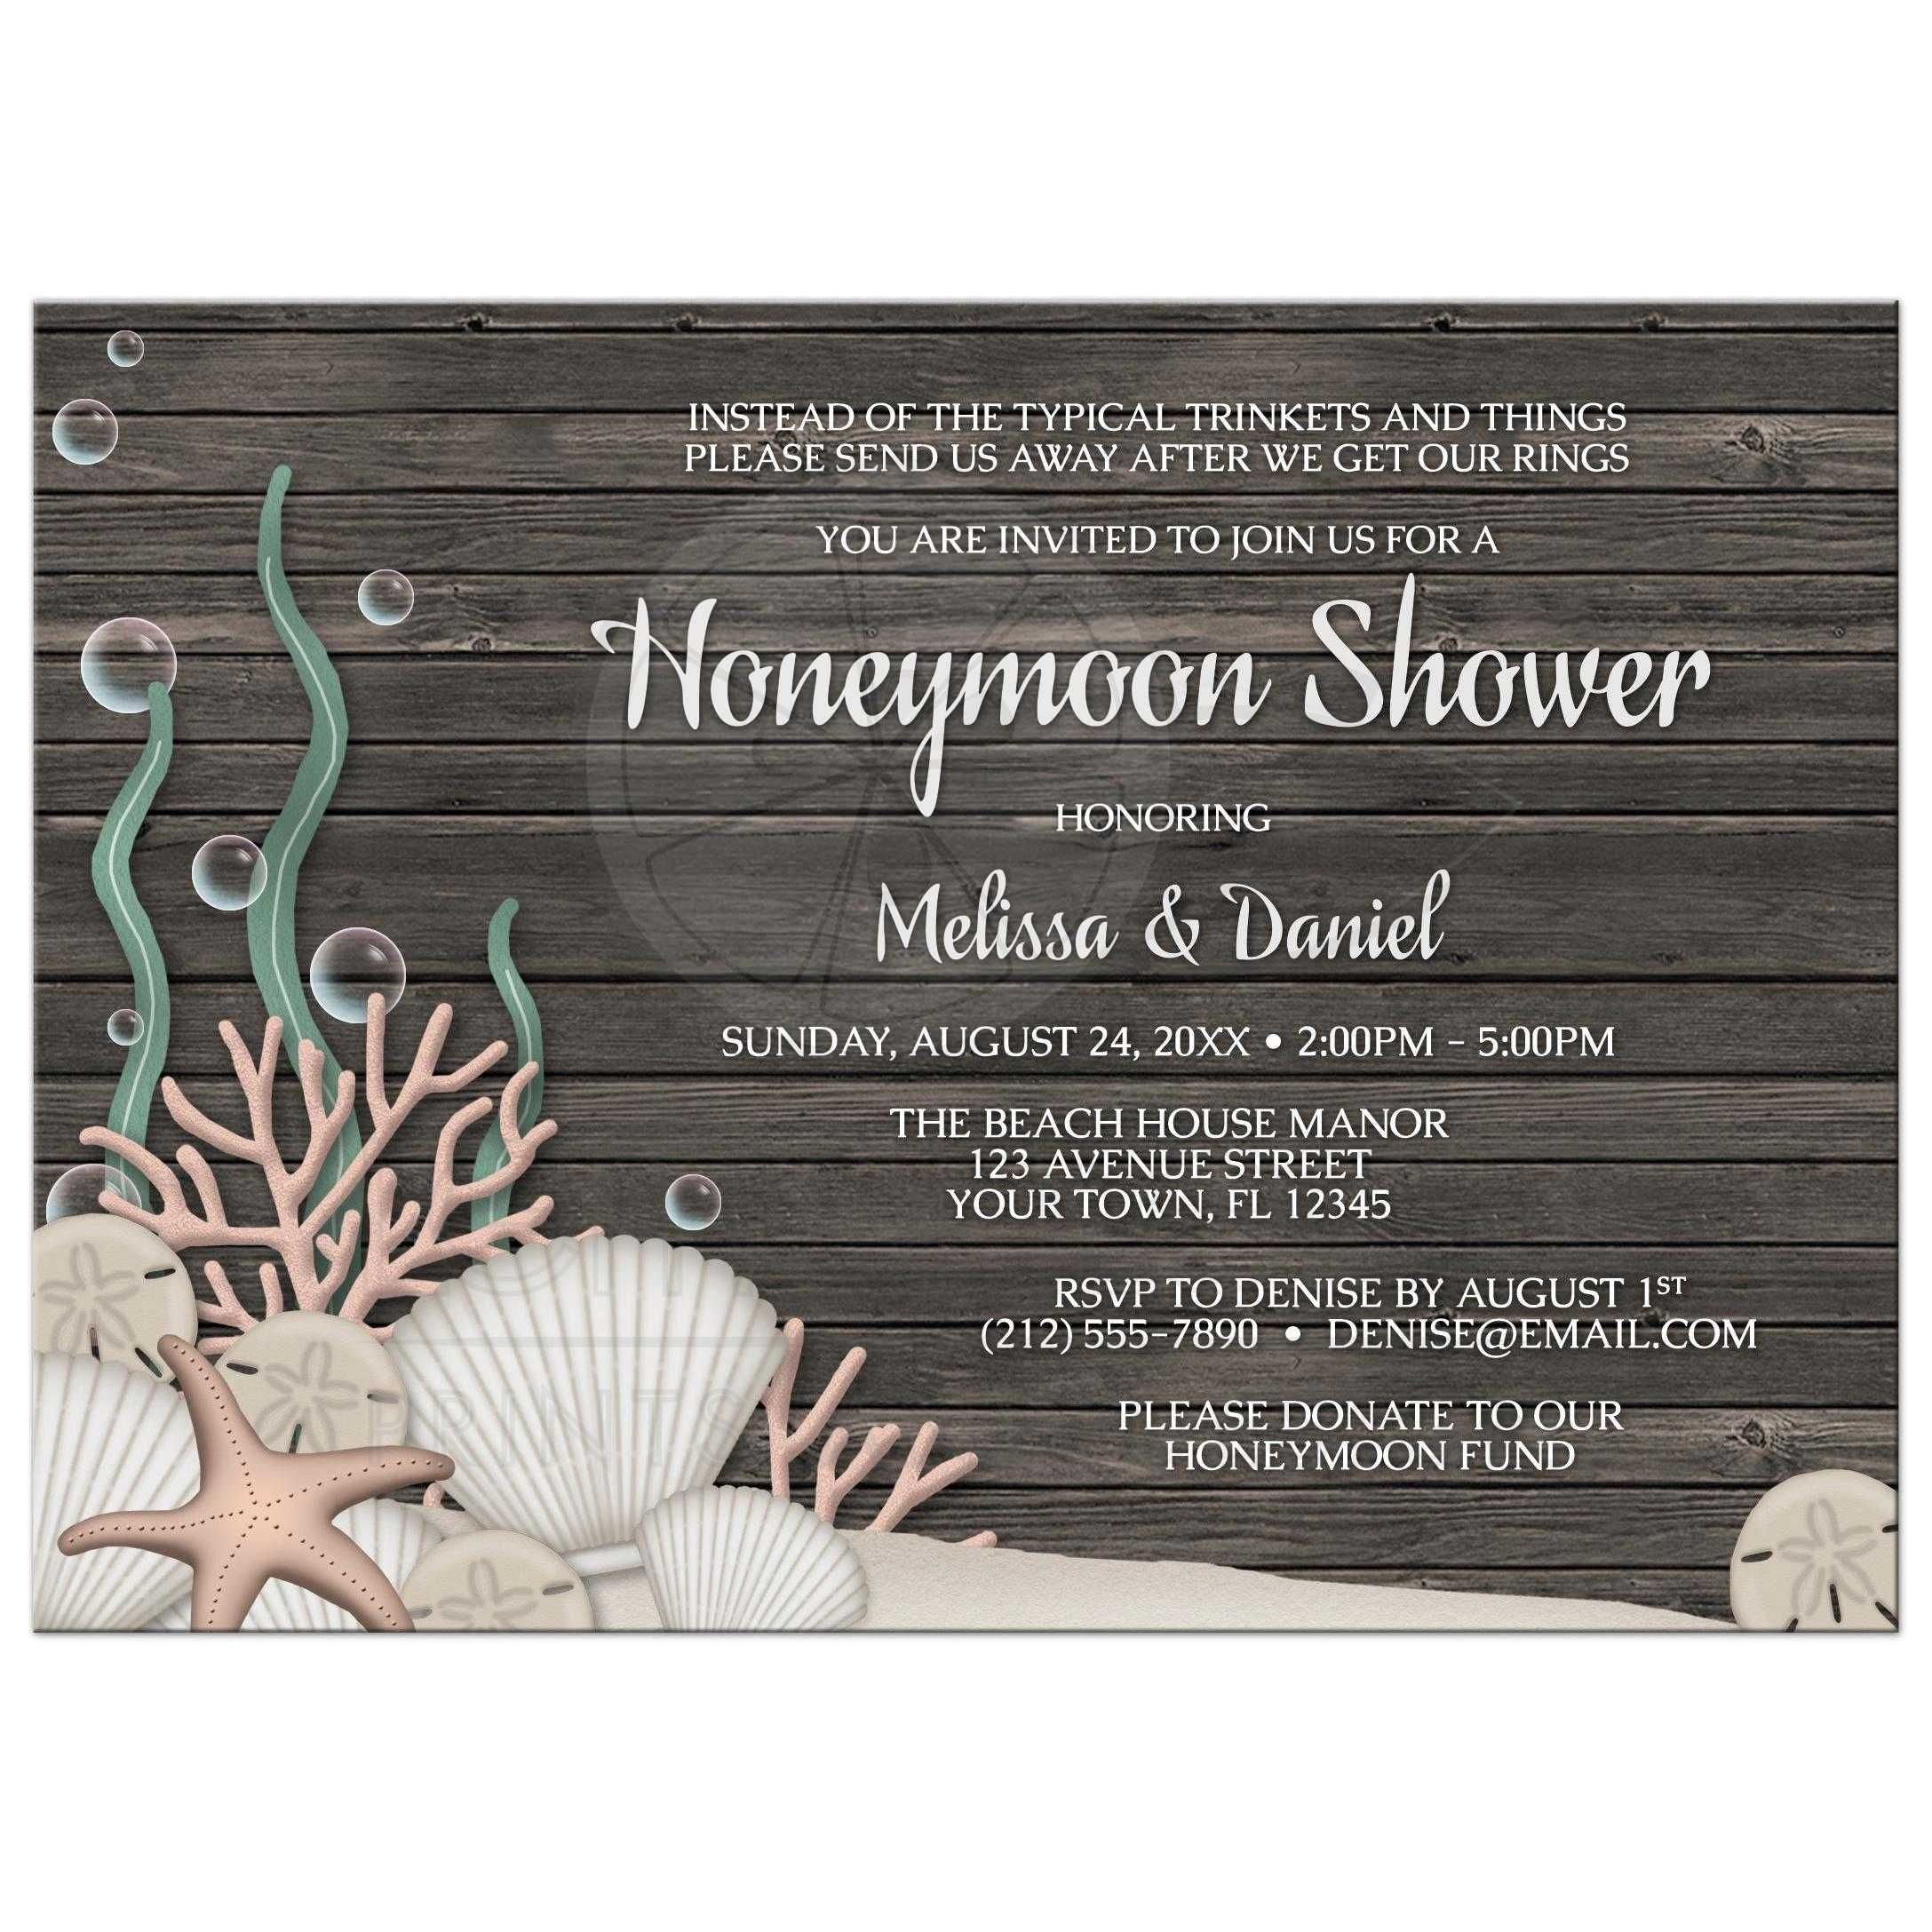 Honeymoon Shower Invitations Rustic Beach And Wood